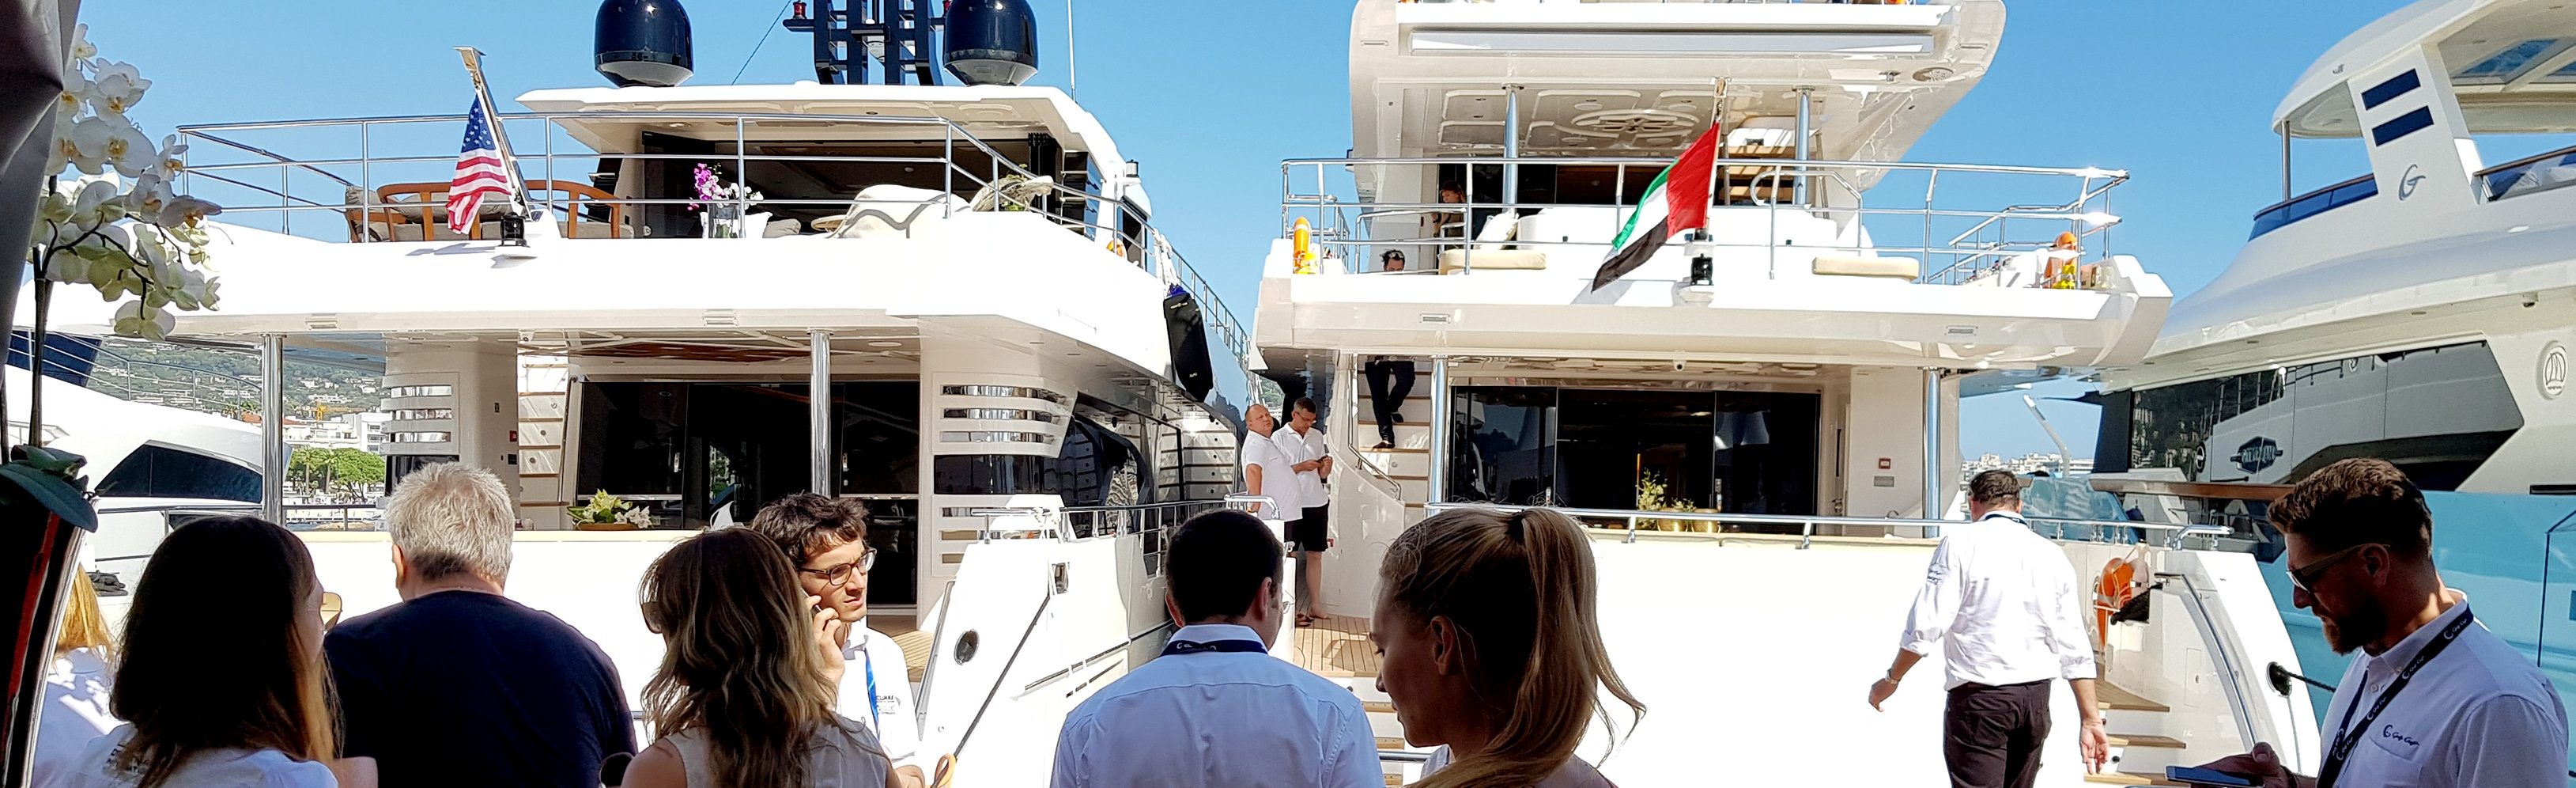 Cannes-Yachting-Festival-2017-Day-3-(7)-1.jpg